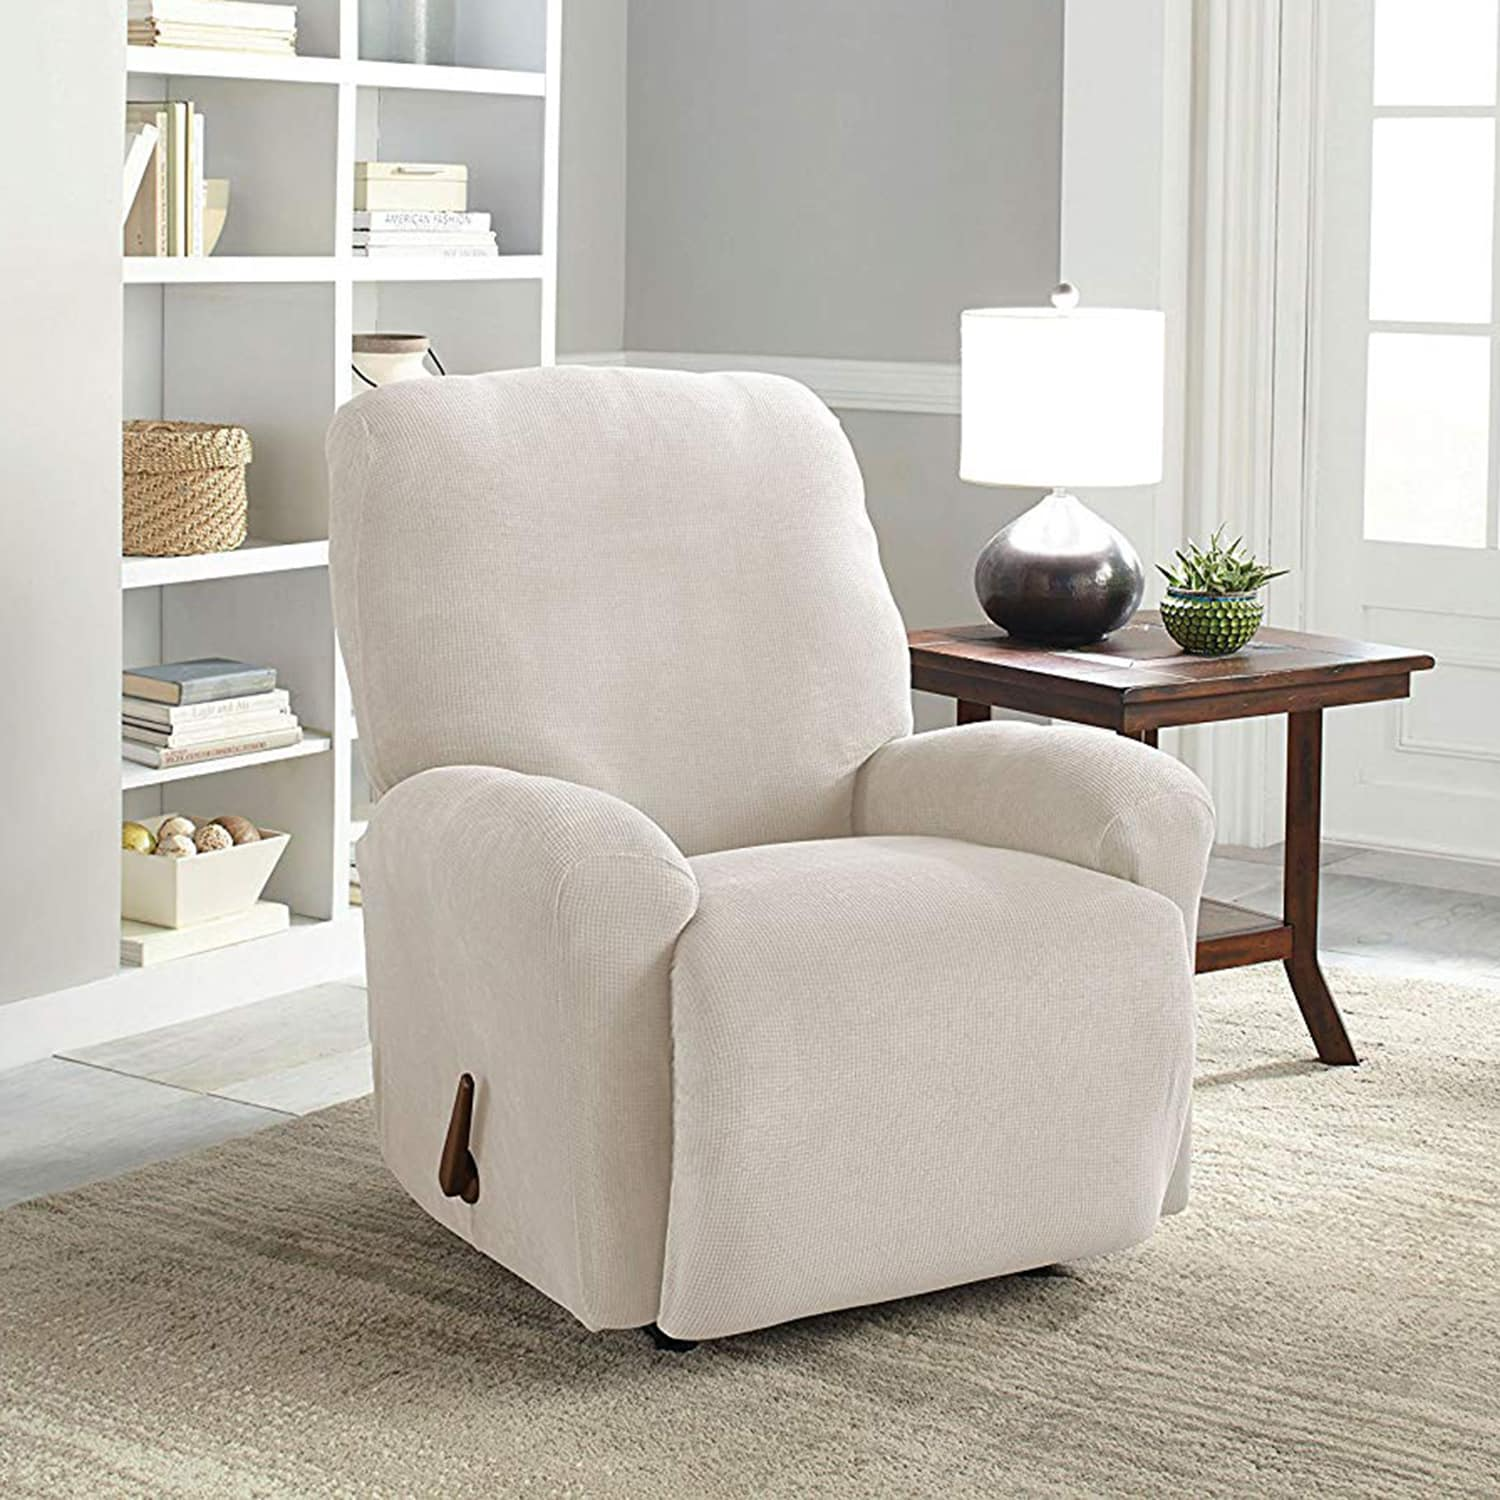 Top 10 Best Recliner Chair Covers in 2019 | Slipcover - Reviews